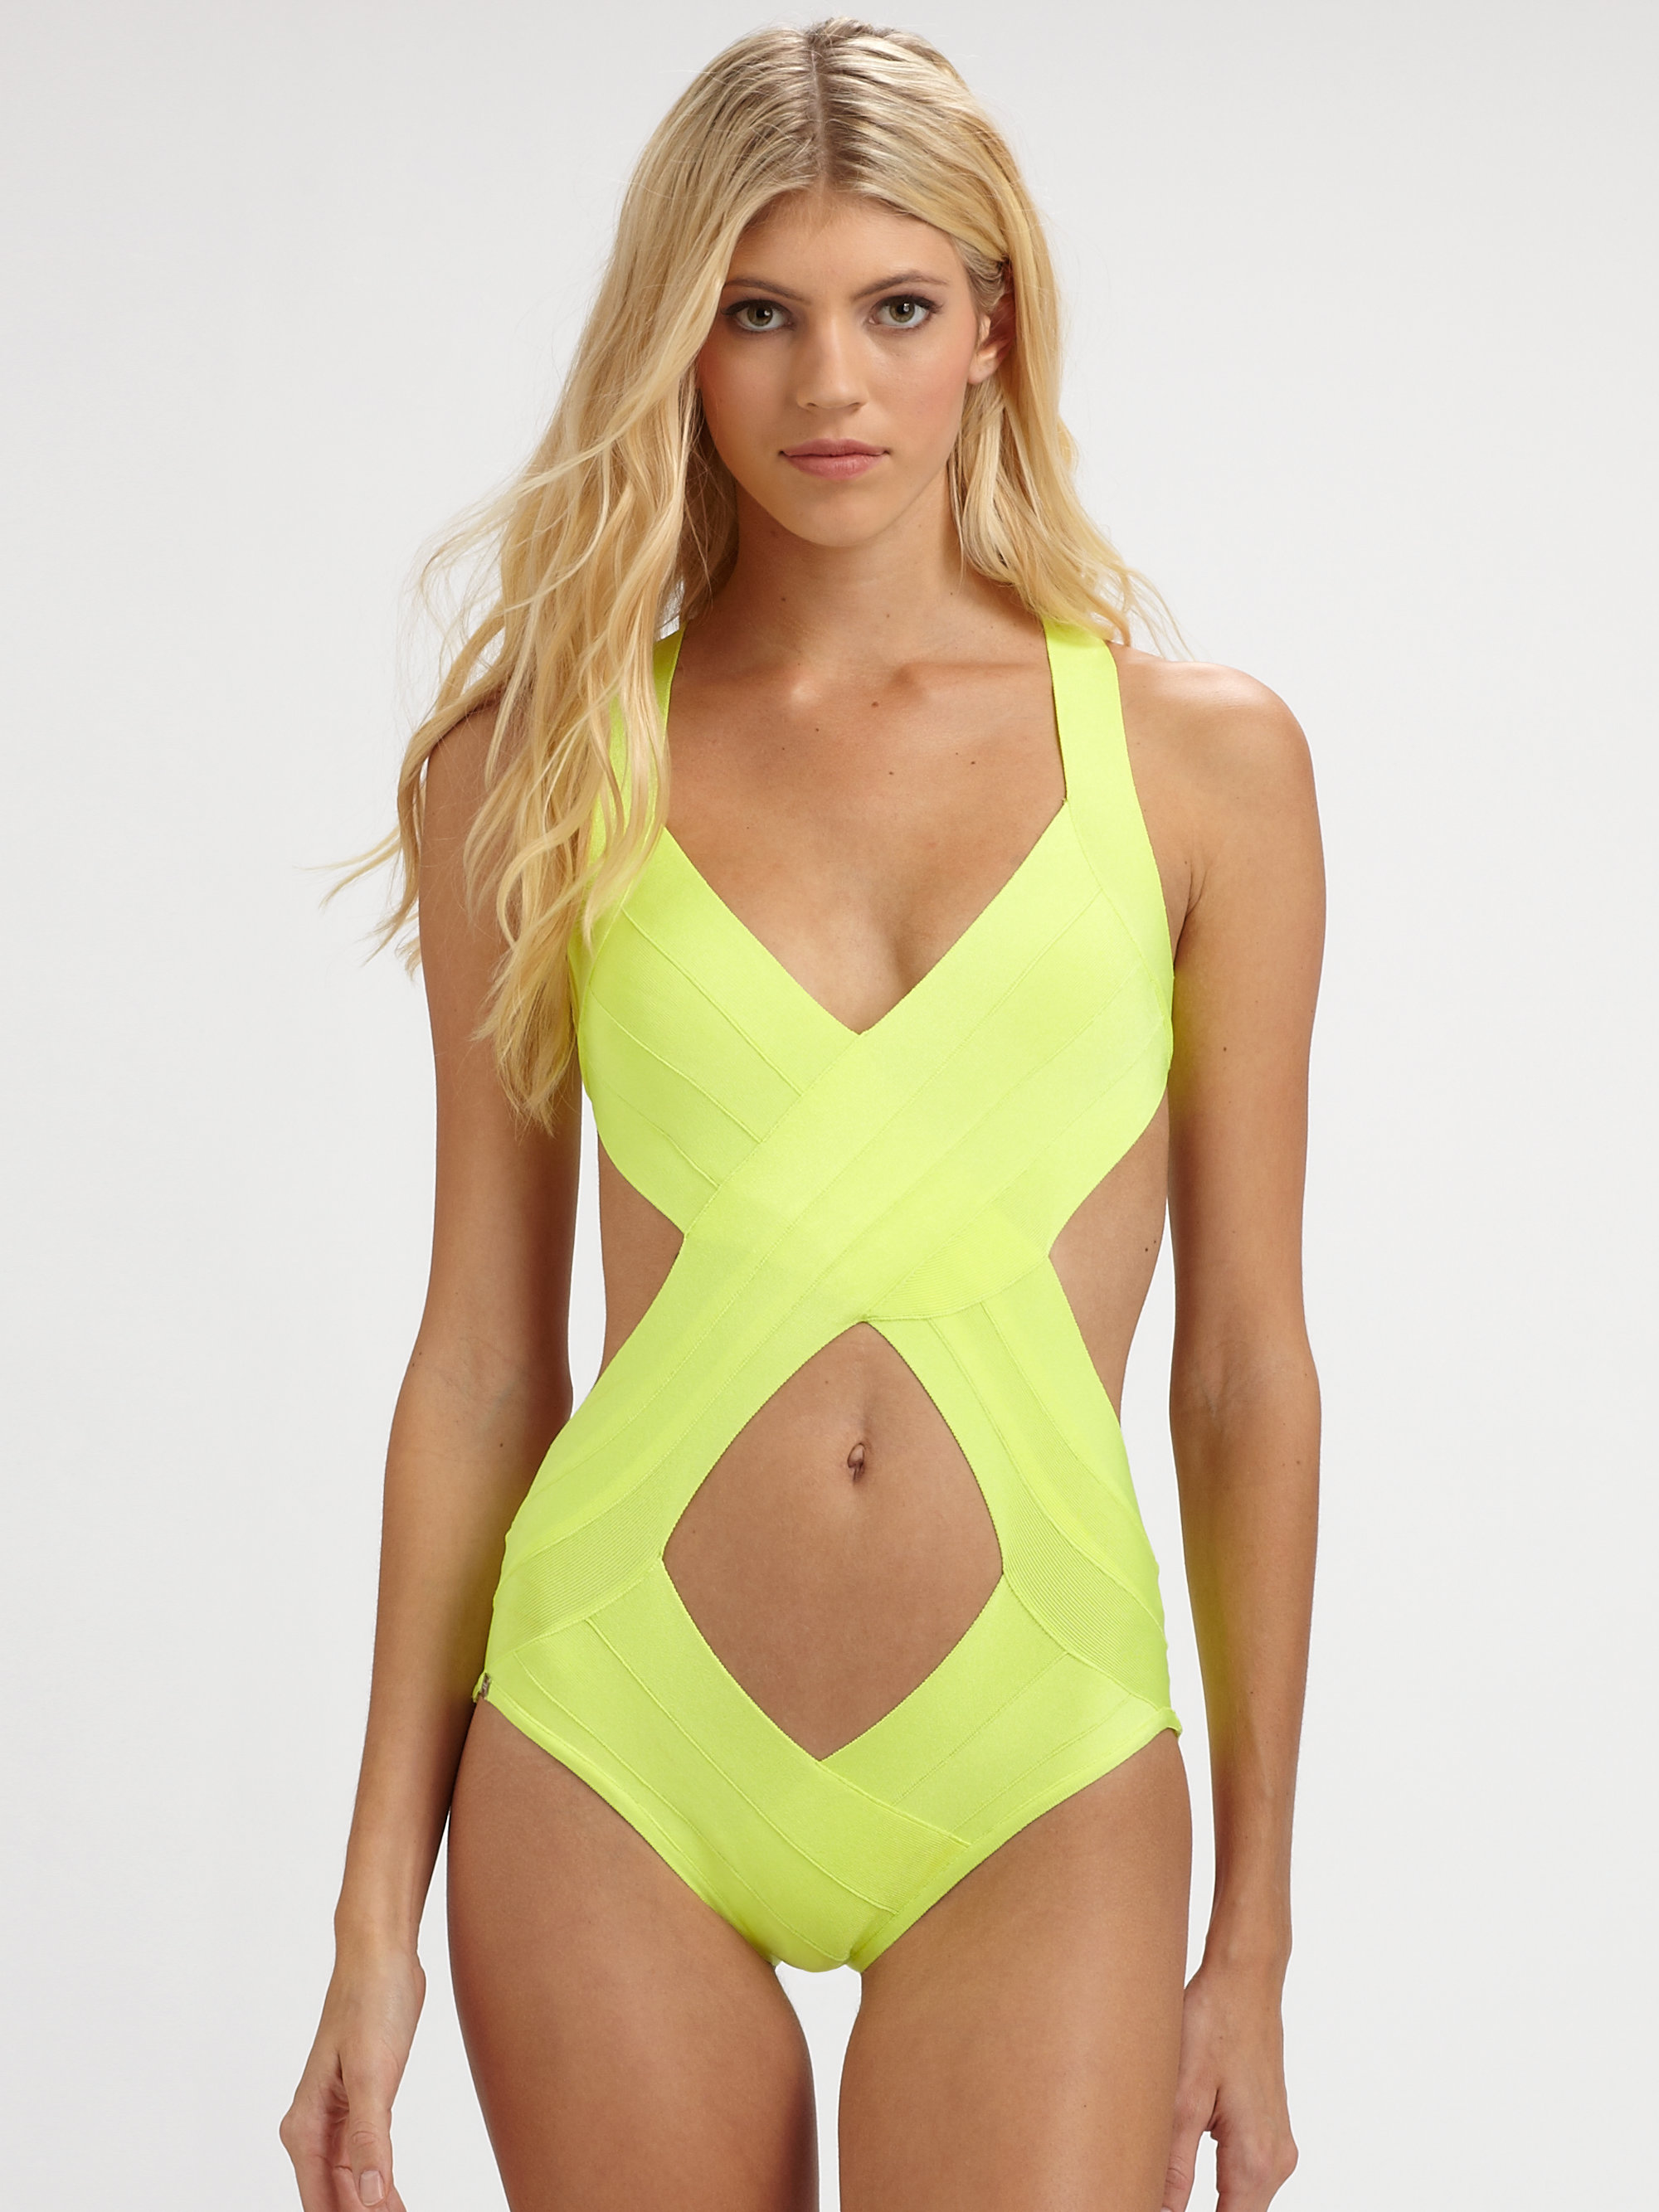 herv l ger onepiece cutout swimsuit in yellow neon